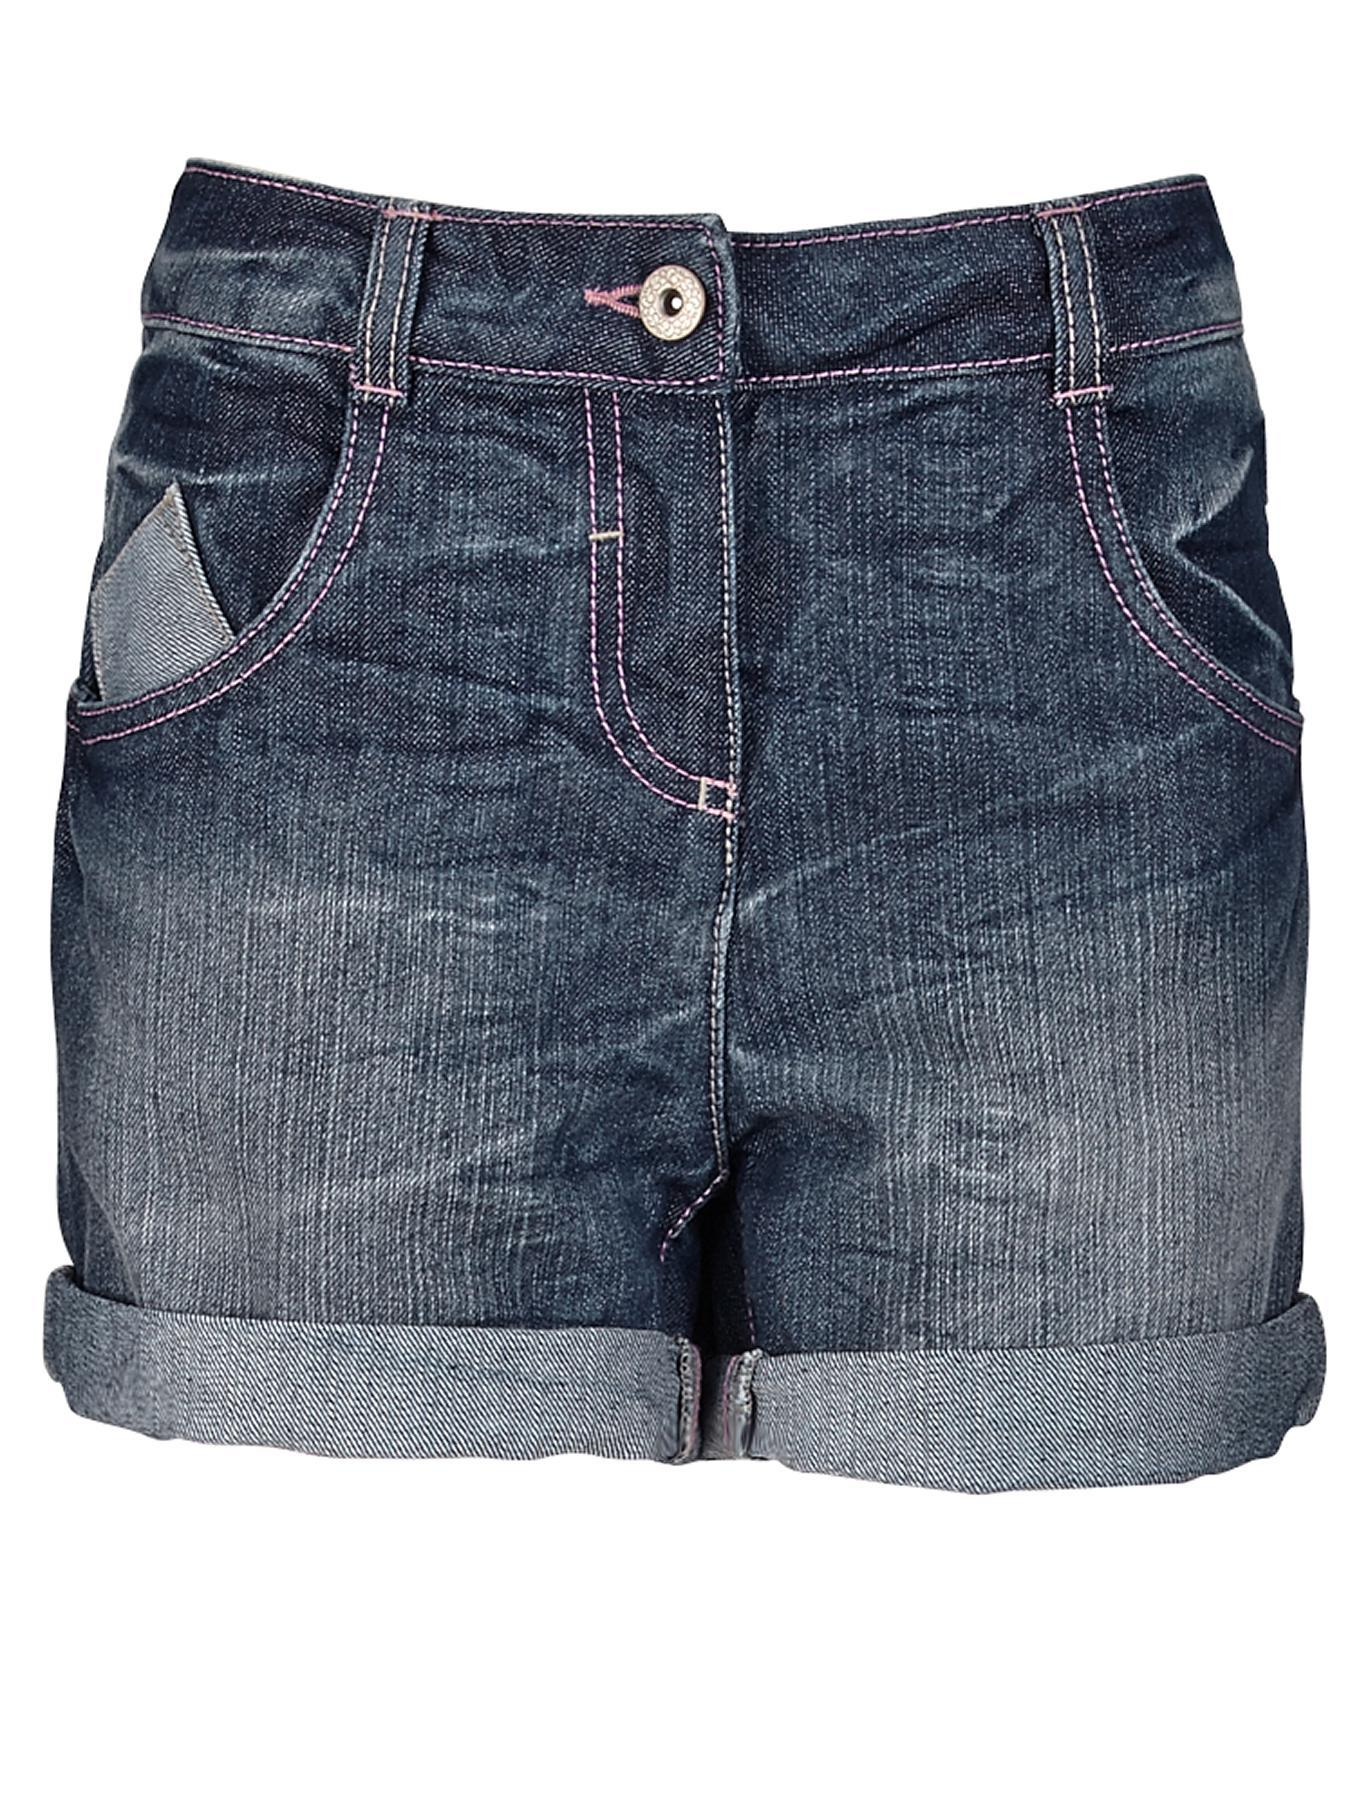 Freespirit Girls Light Wash Denim Shorts